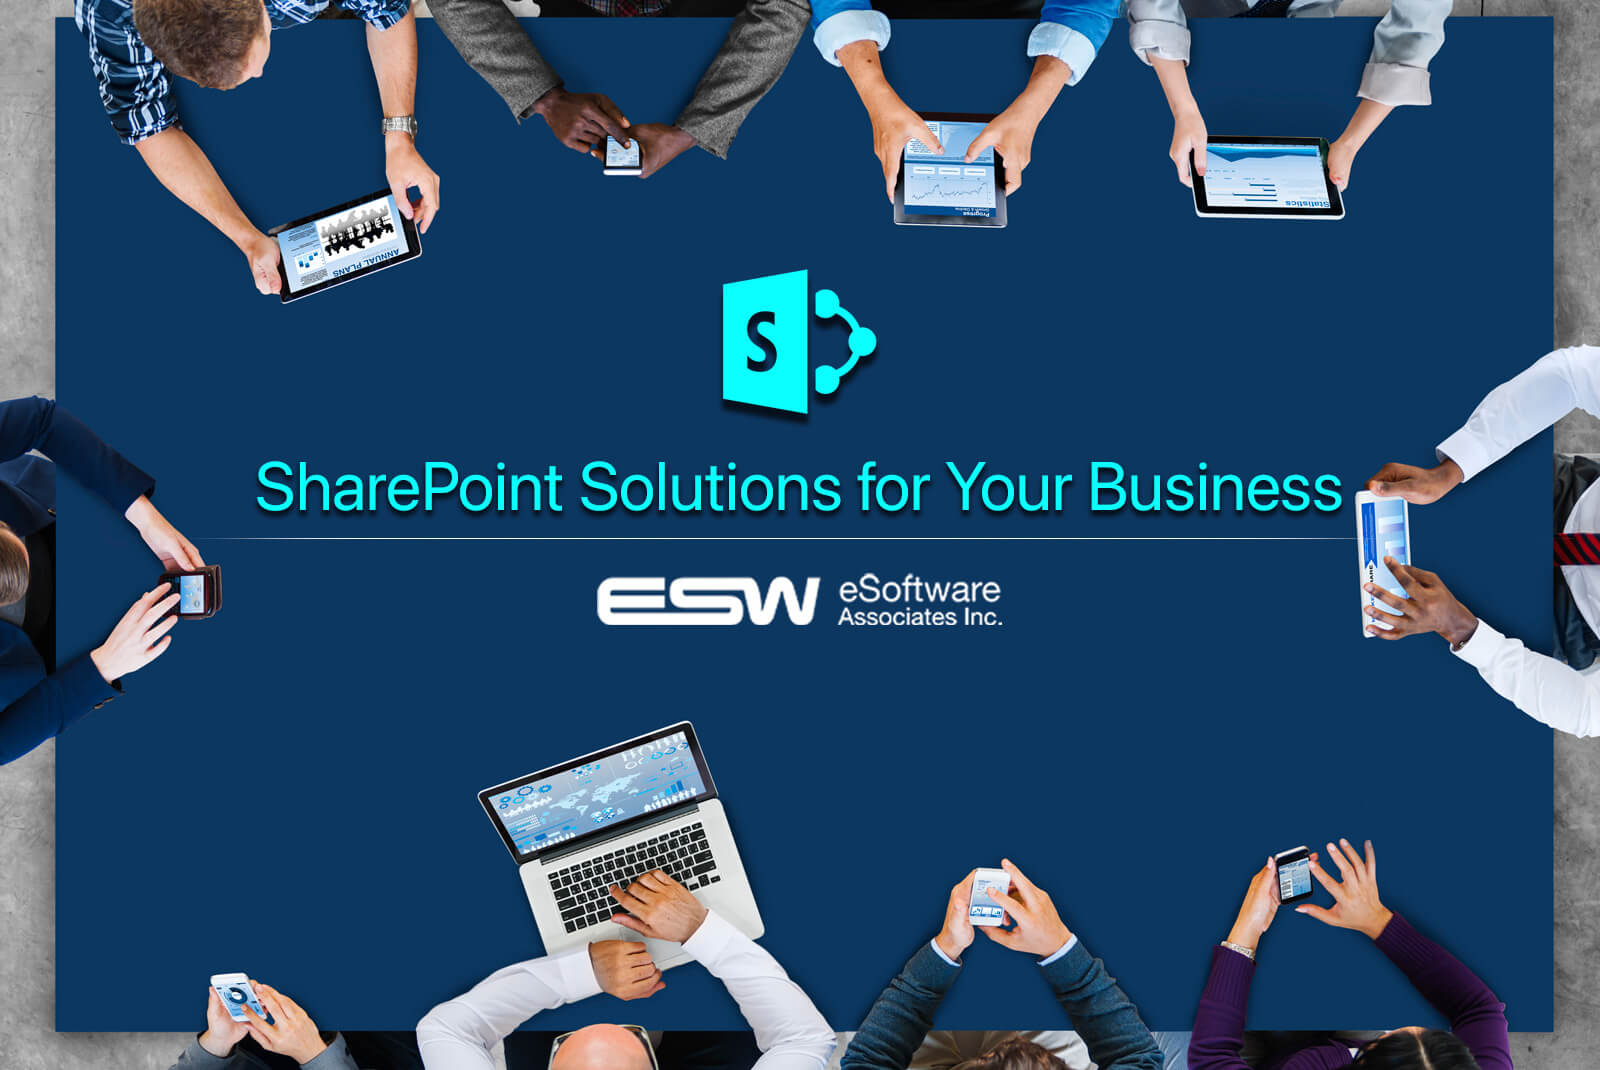 SharePoint Solutions for Your Business by ESWCompany